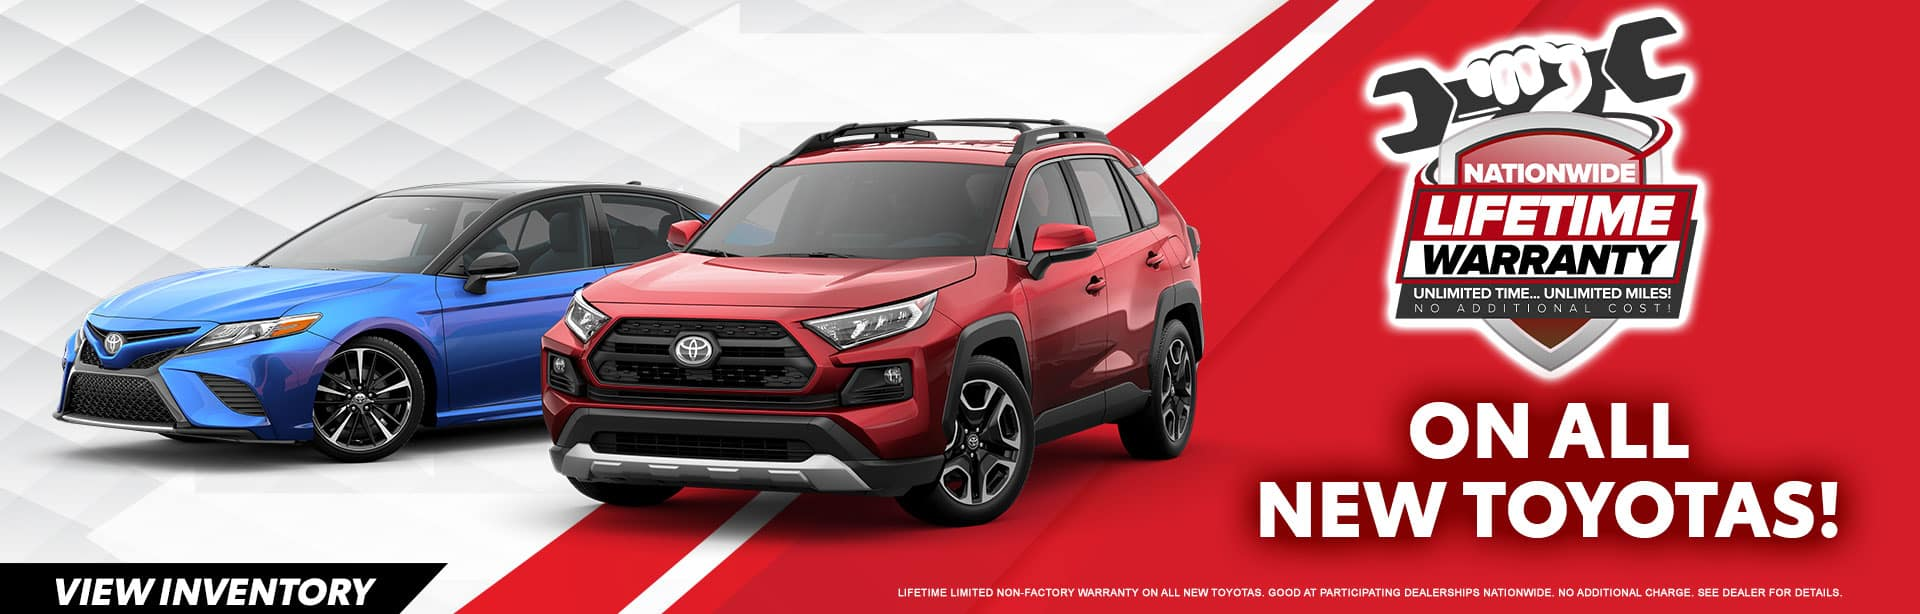 NATIONWIDE LIFETIME WARRANTY ON ALL NEW TOYOTAS AT BEV SMITH TOYOTA